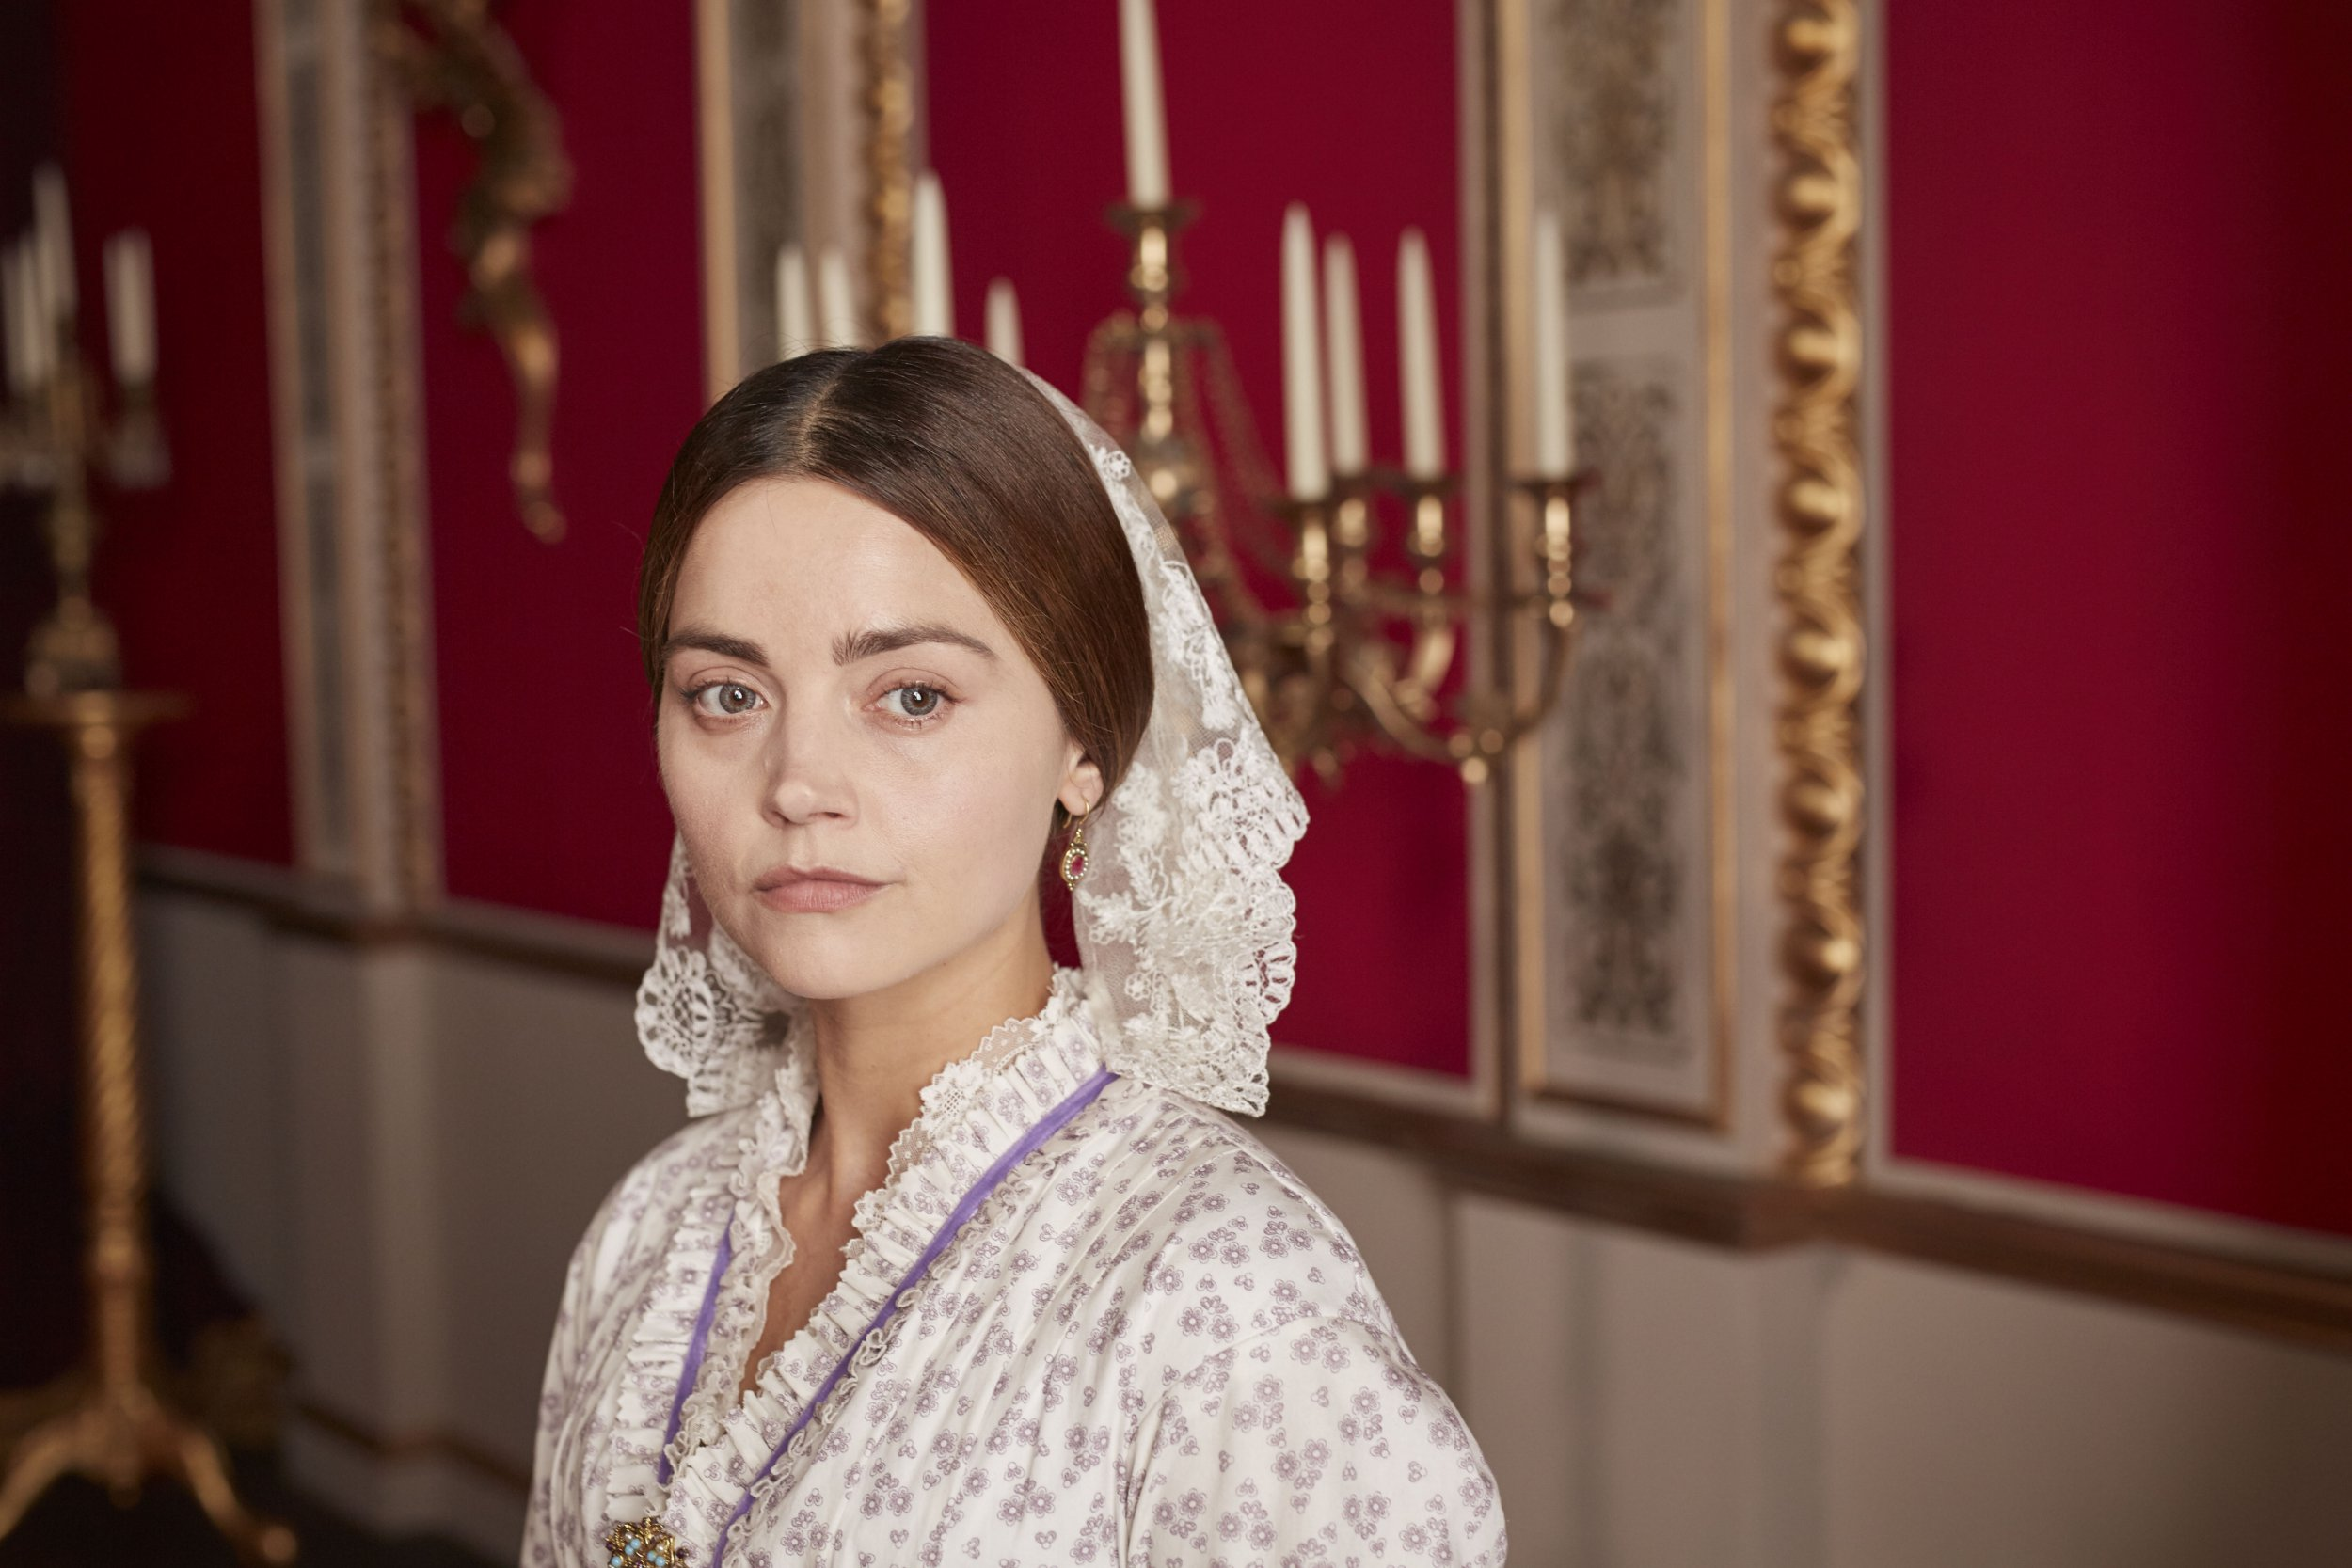 MAMMOTH SCREEN FOR ITV VICTORIA Series 3 Episode 5 Pictured: JENNA COLEMAN as Queen Victoria. This photograph must not be syndicated to any other company, publication or website, or permanently archived, without the express written permission of ITV Picture Desk. Full Terms and conditions are available on www.itv.com/presscentre/itvpictures/terms Copyright: ITV,Mammoth Screen. For further information please contact: Patrick.smith@itv.com 0207 1573044